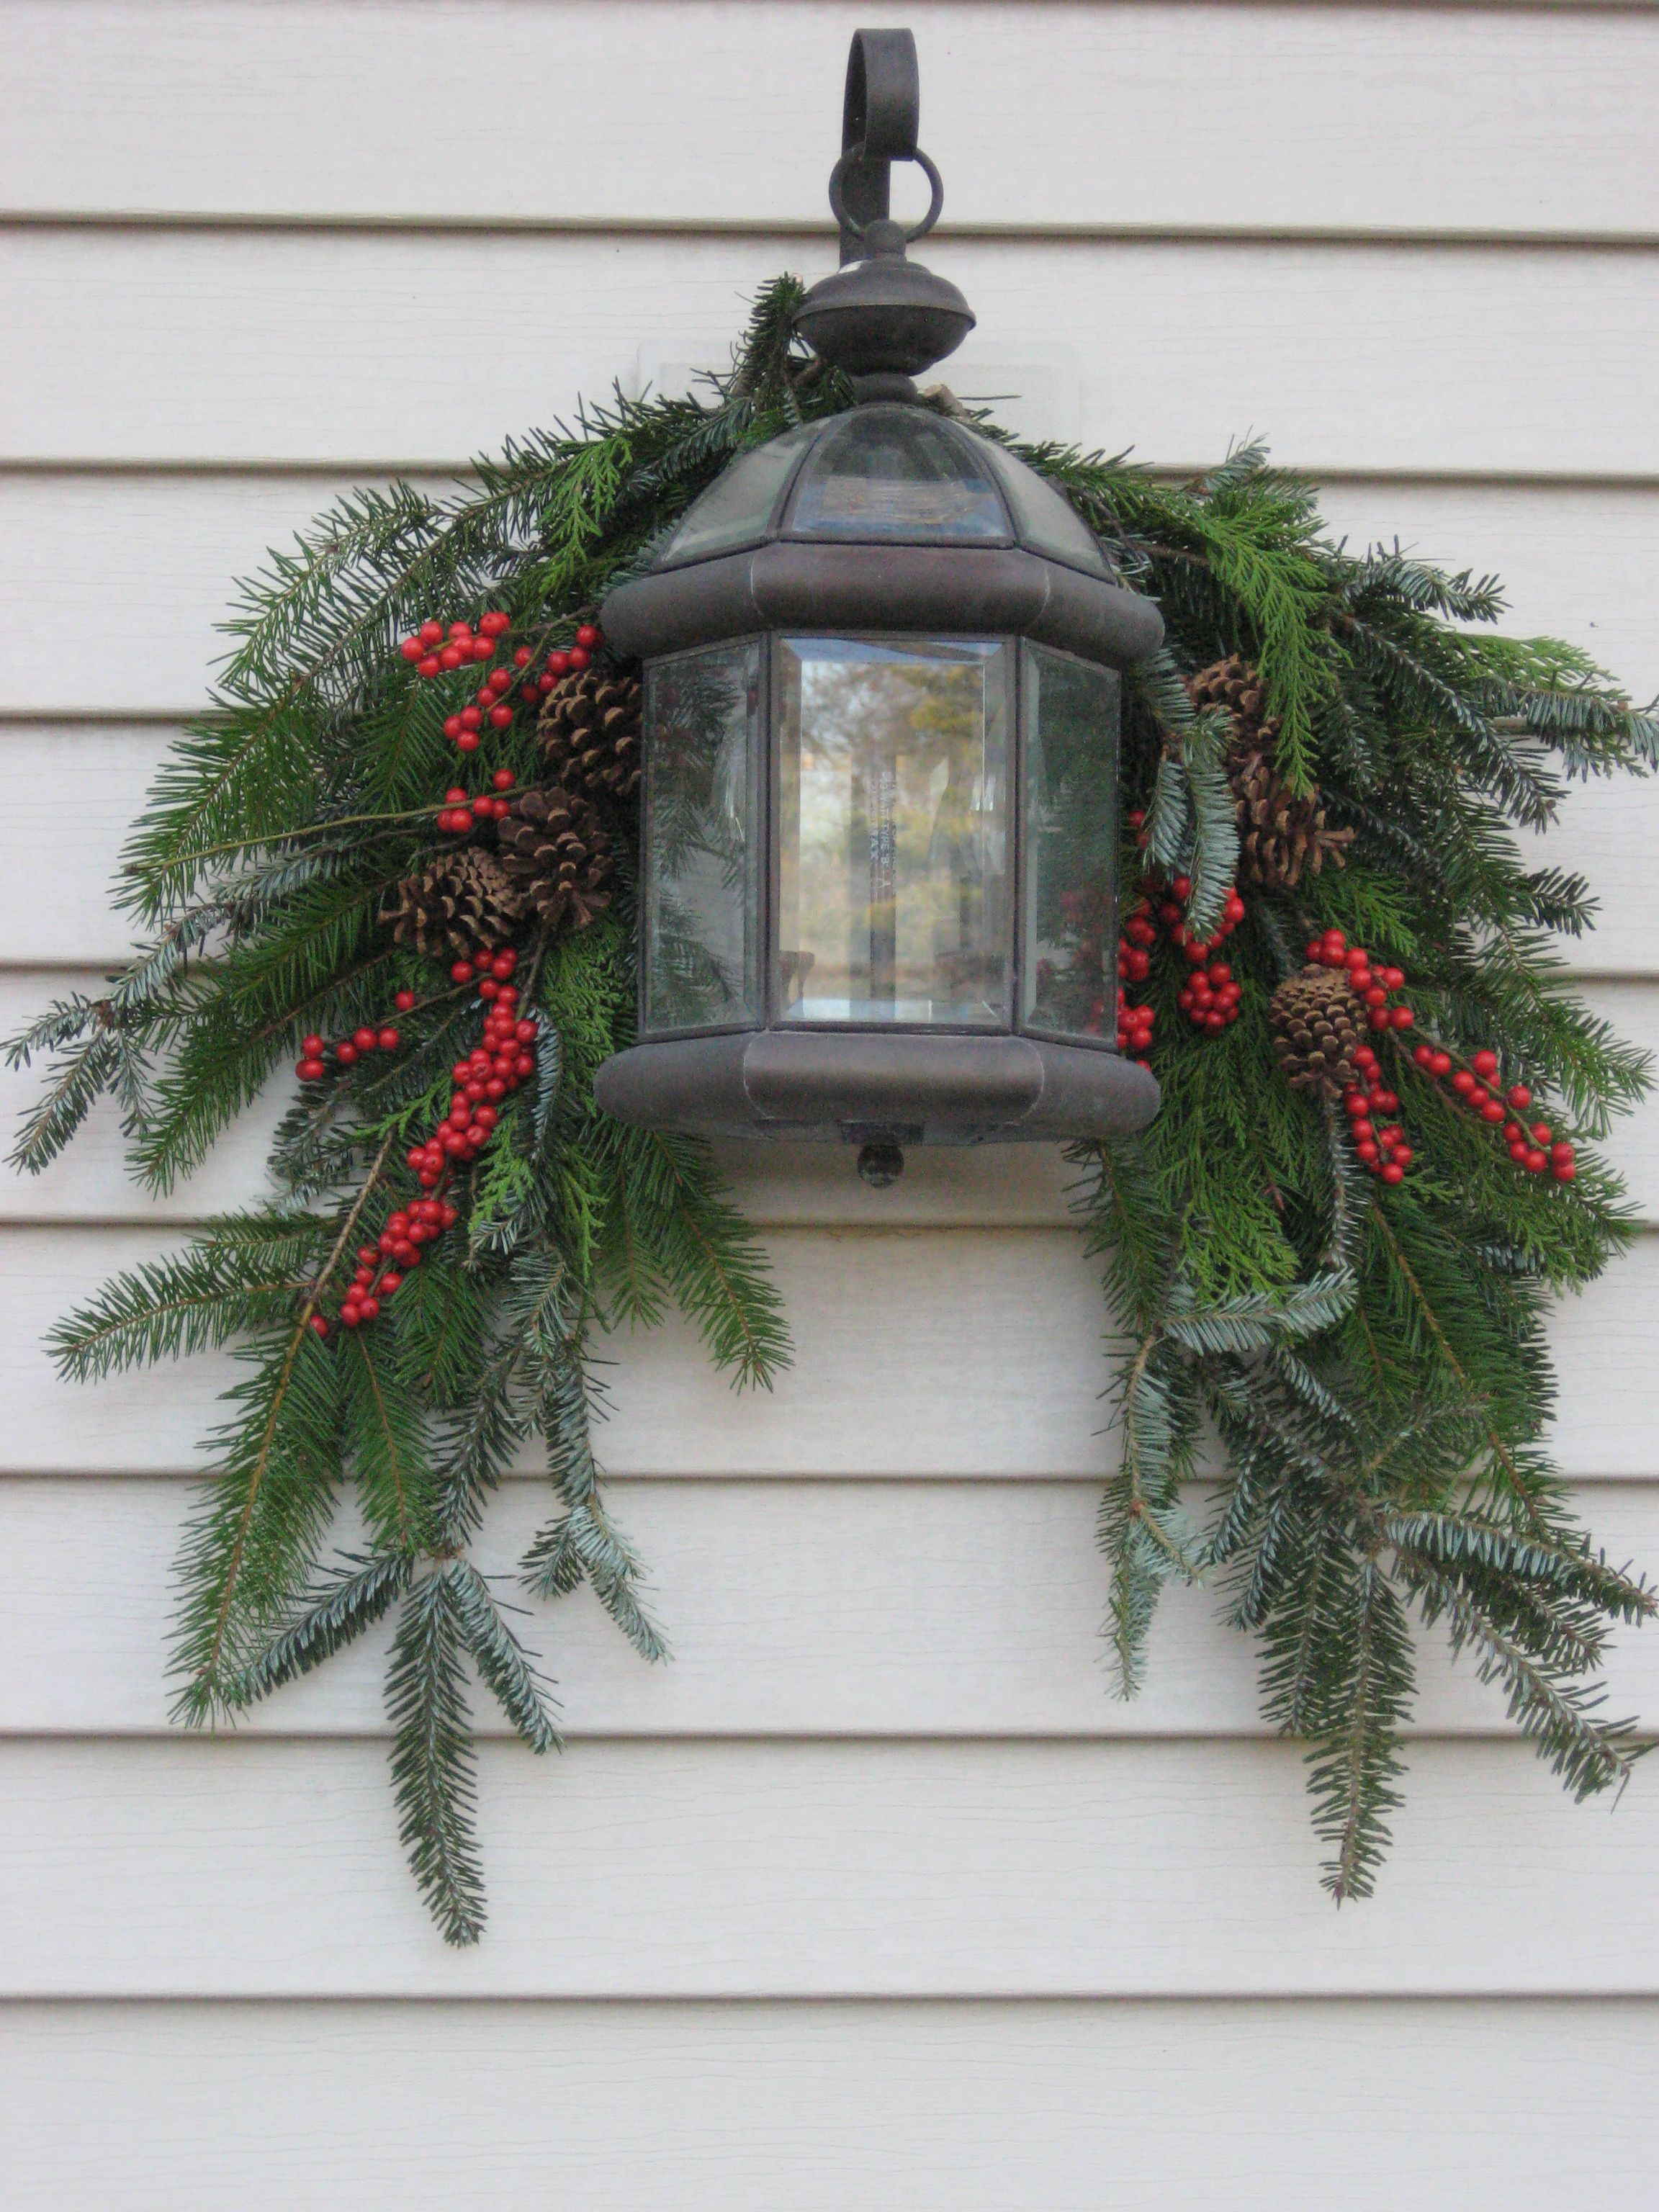 Outdoor decorating for christmas - Love This Lantern And Swag Look For Outdoor Decorating Christmas